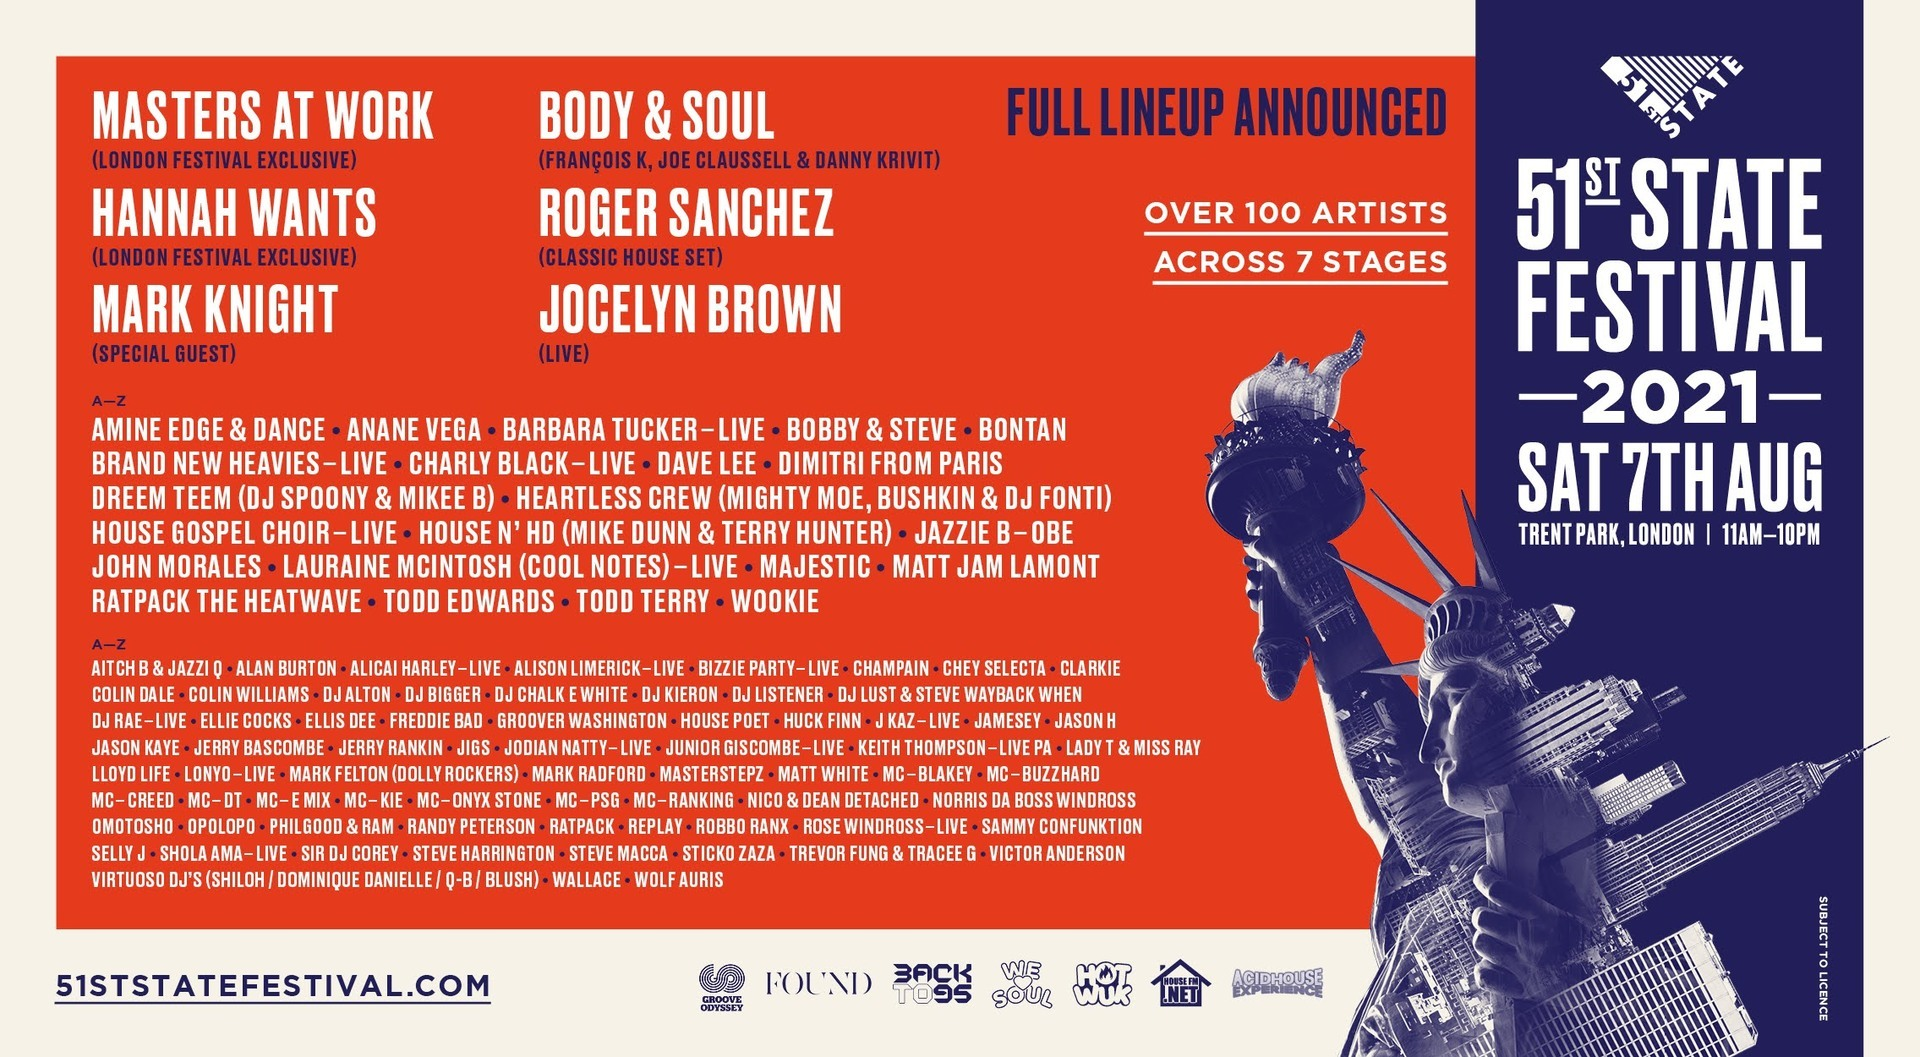 51st State Festival in London August 2021 - 51st State Festival in London August 2021